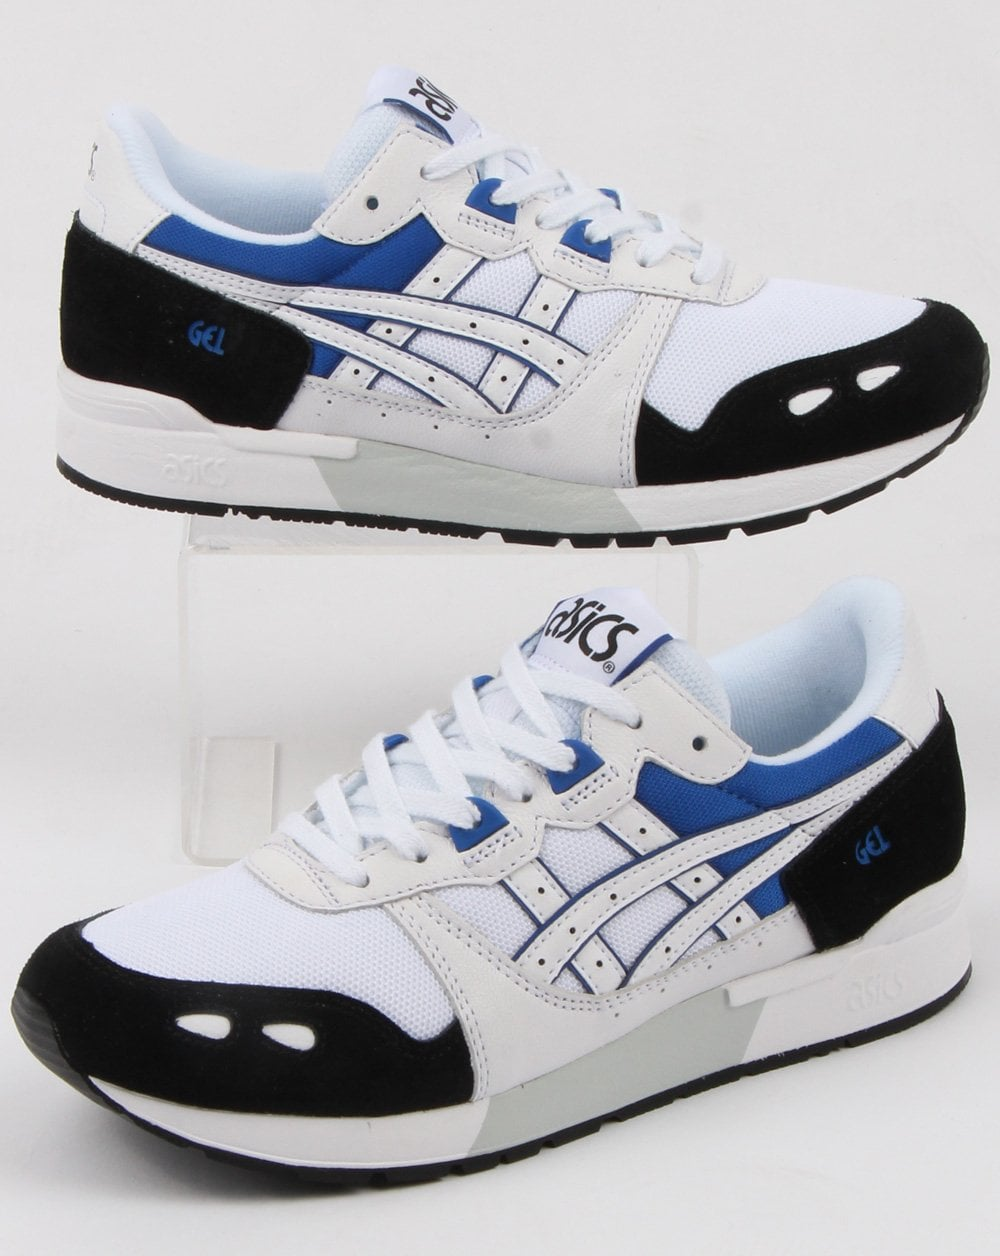 272696636bf9 Asics Asics Gel-lyte Trainers White blue